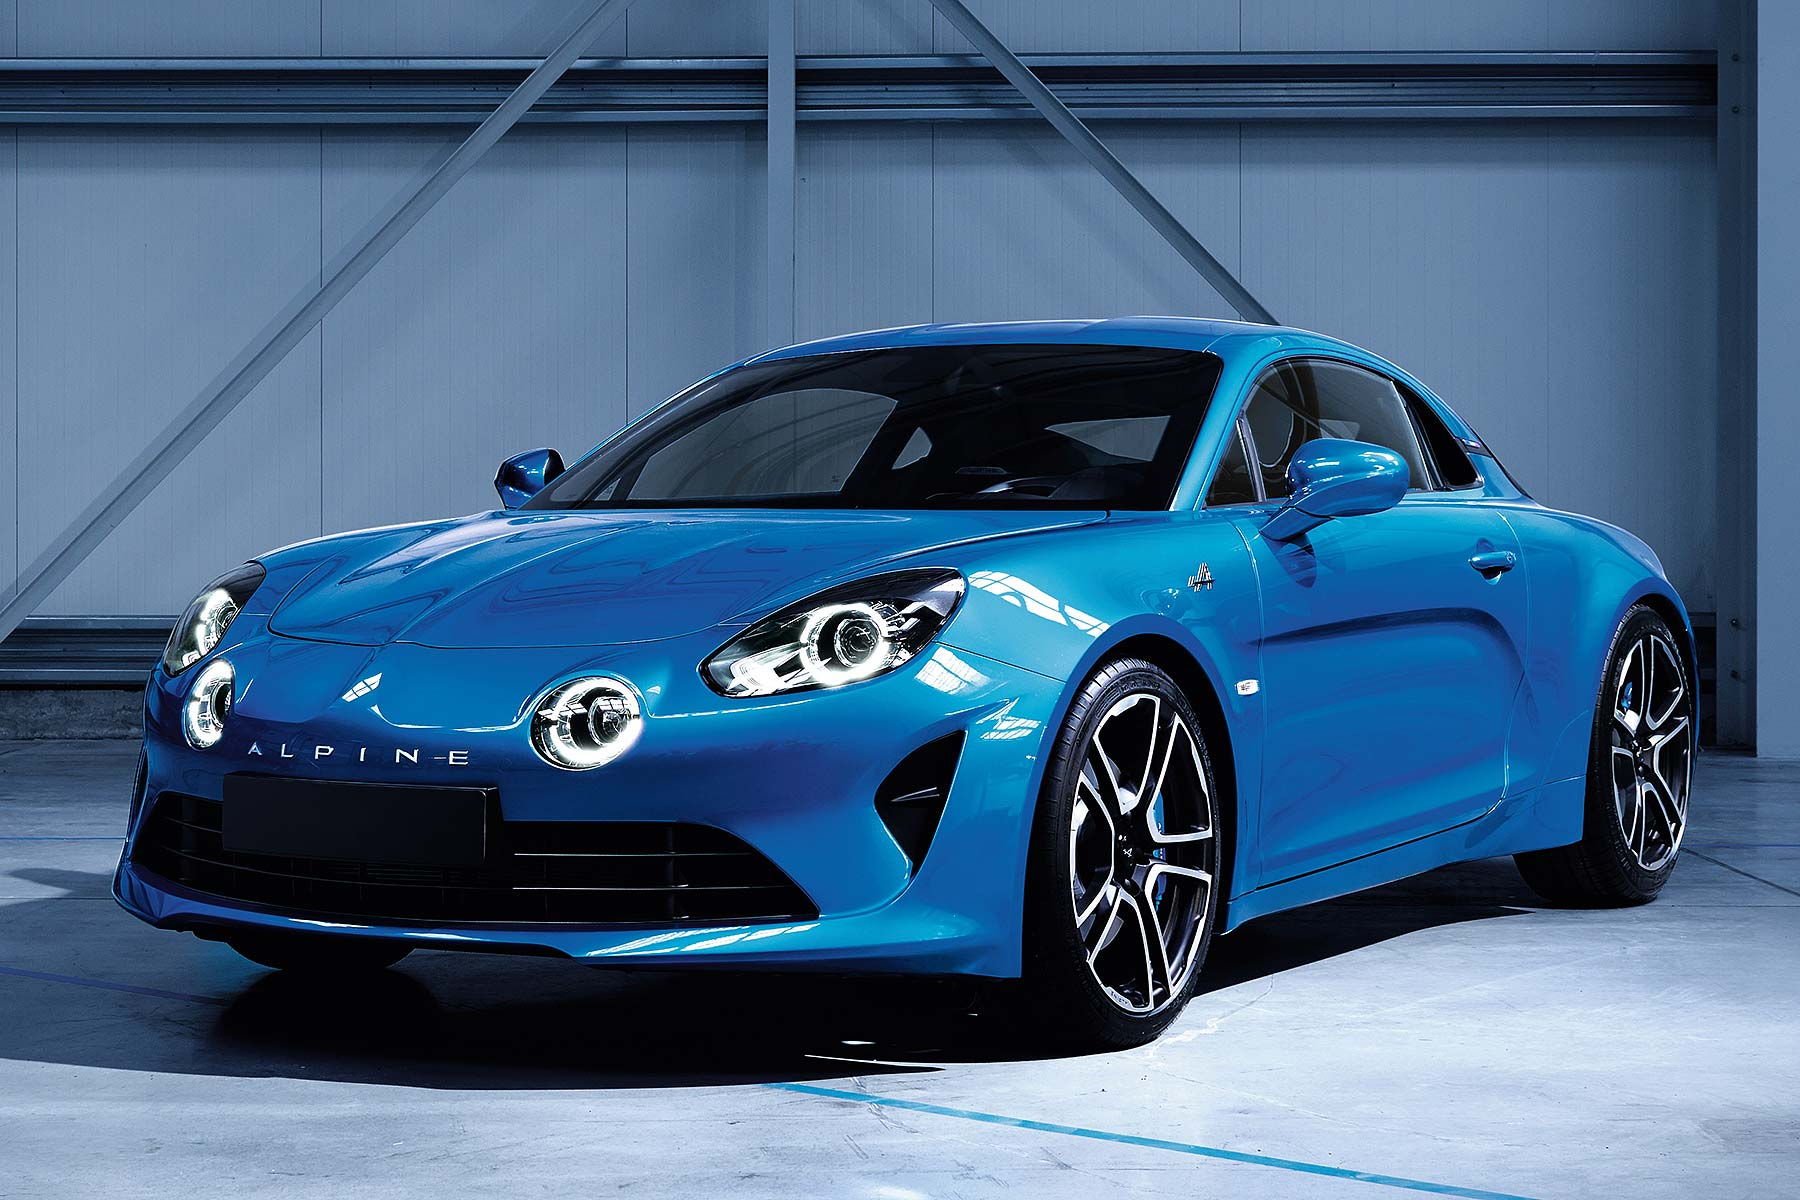 official alpine a110 sports car revealed motoring research. Black Bedroom Furniture Sets. Home Design Ideas